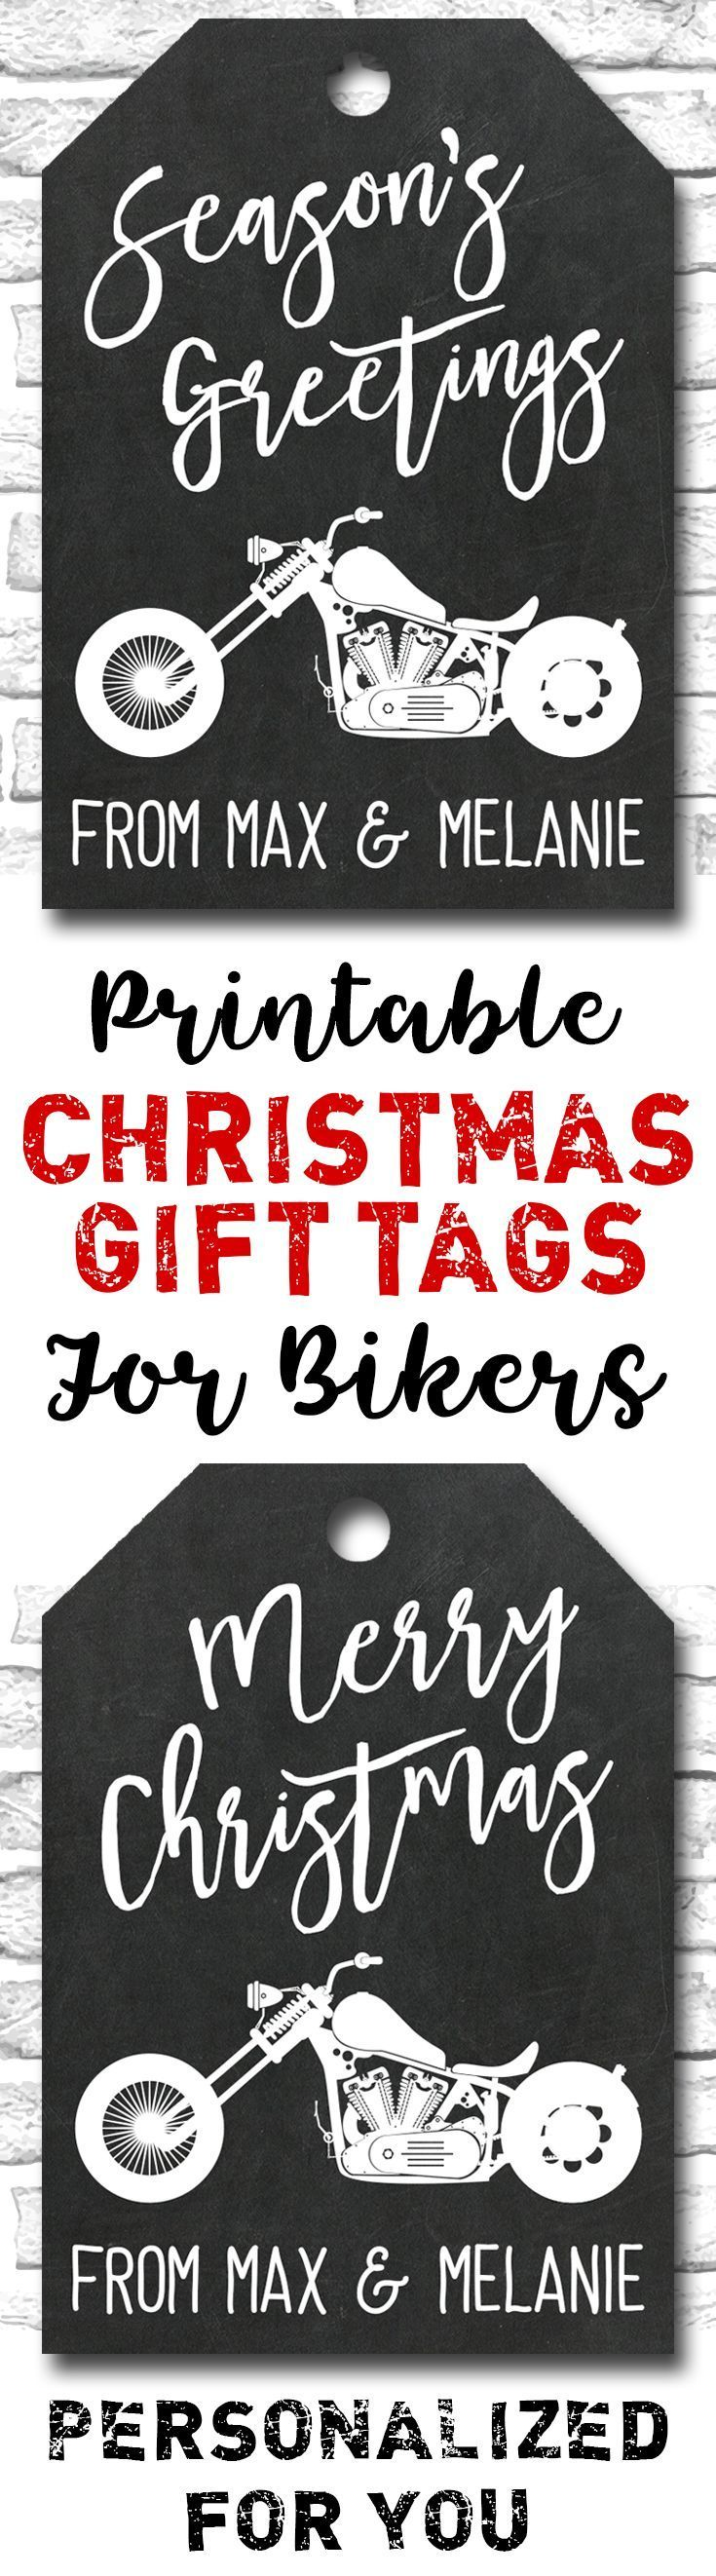 Printable Motorcycle Christmas Gift Tags For Bikers And Harley Davidson Riders - Personalized For You.https://www.etsy.com/ca/listing/481856864/printable-motorcycle-christmas-gift-tags